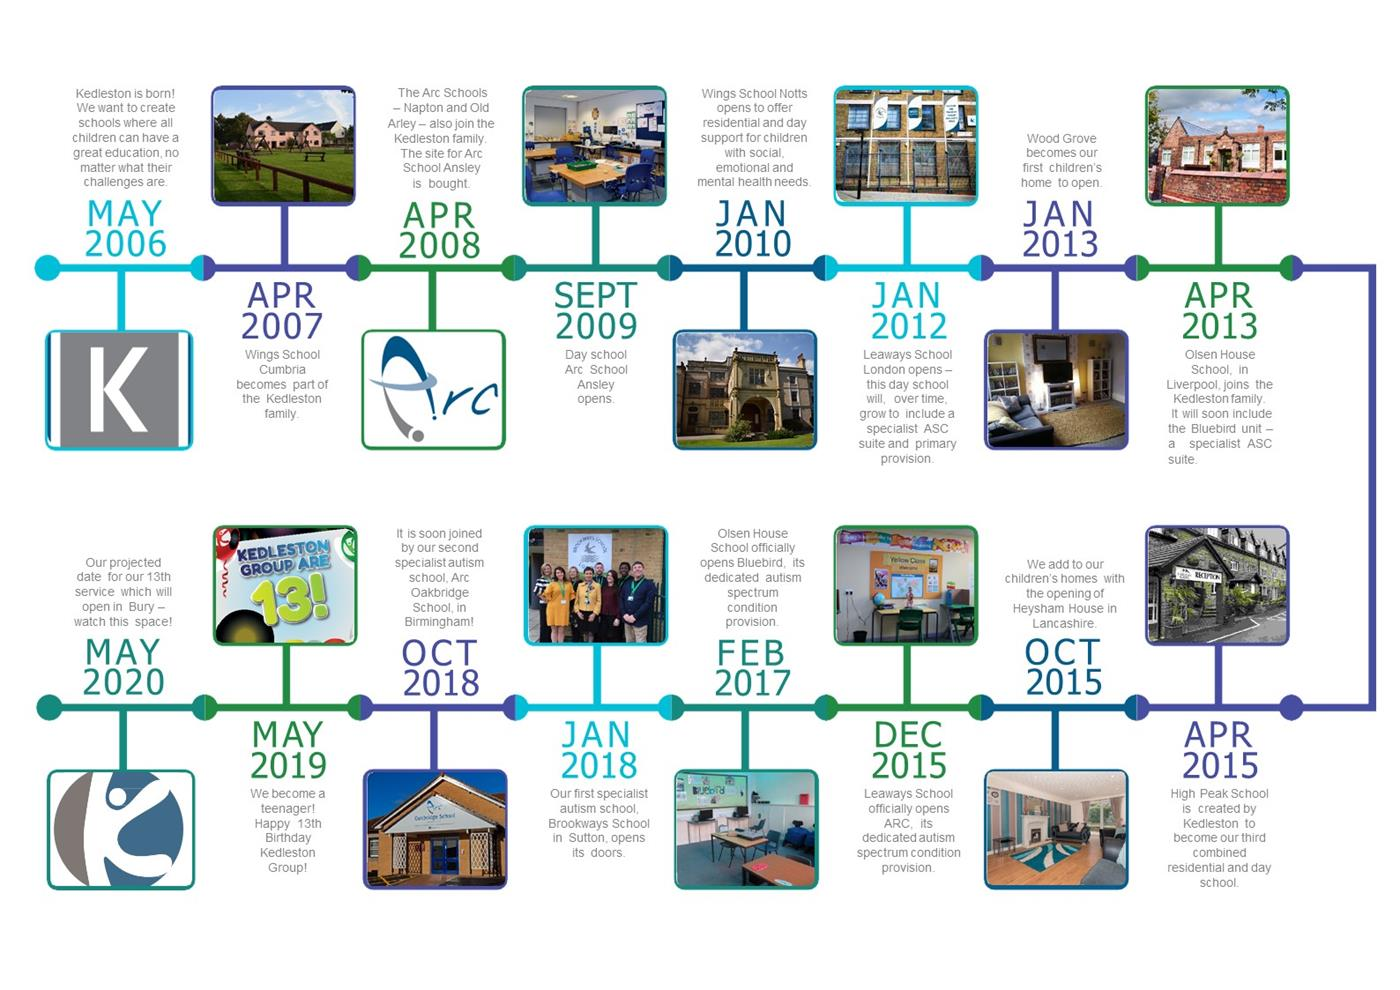 Kedleston Group Timeline